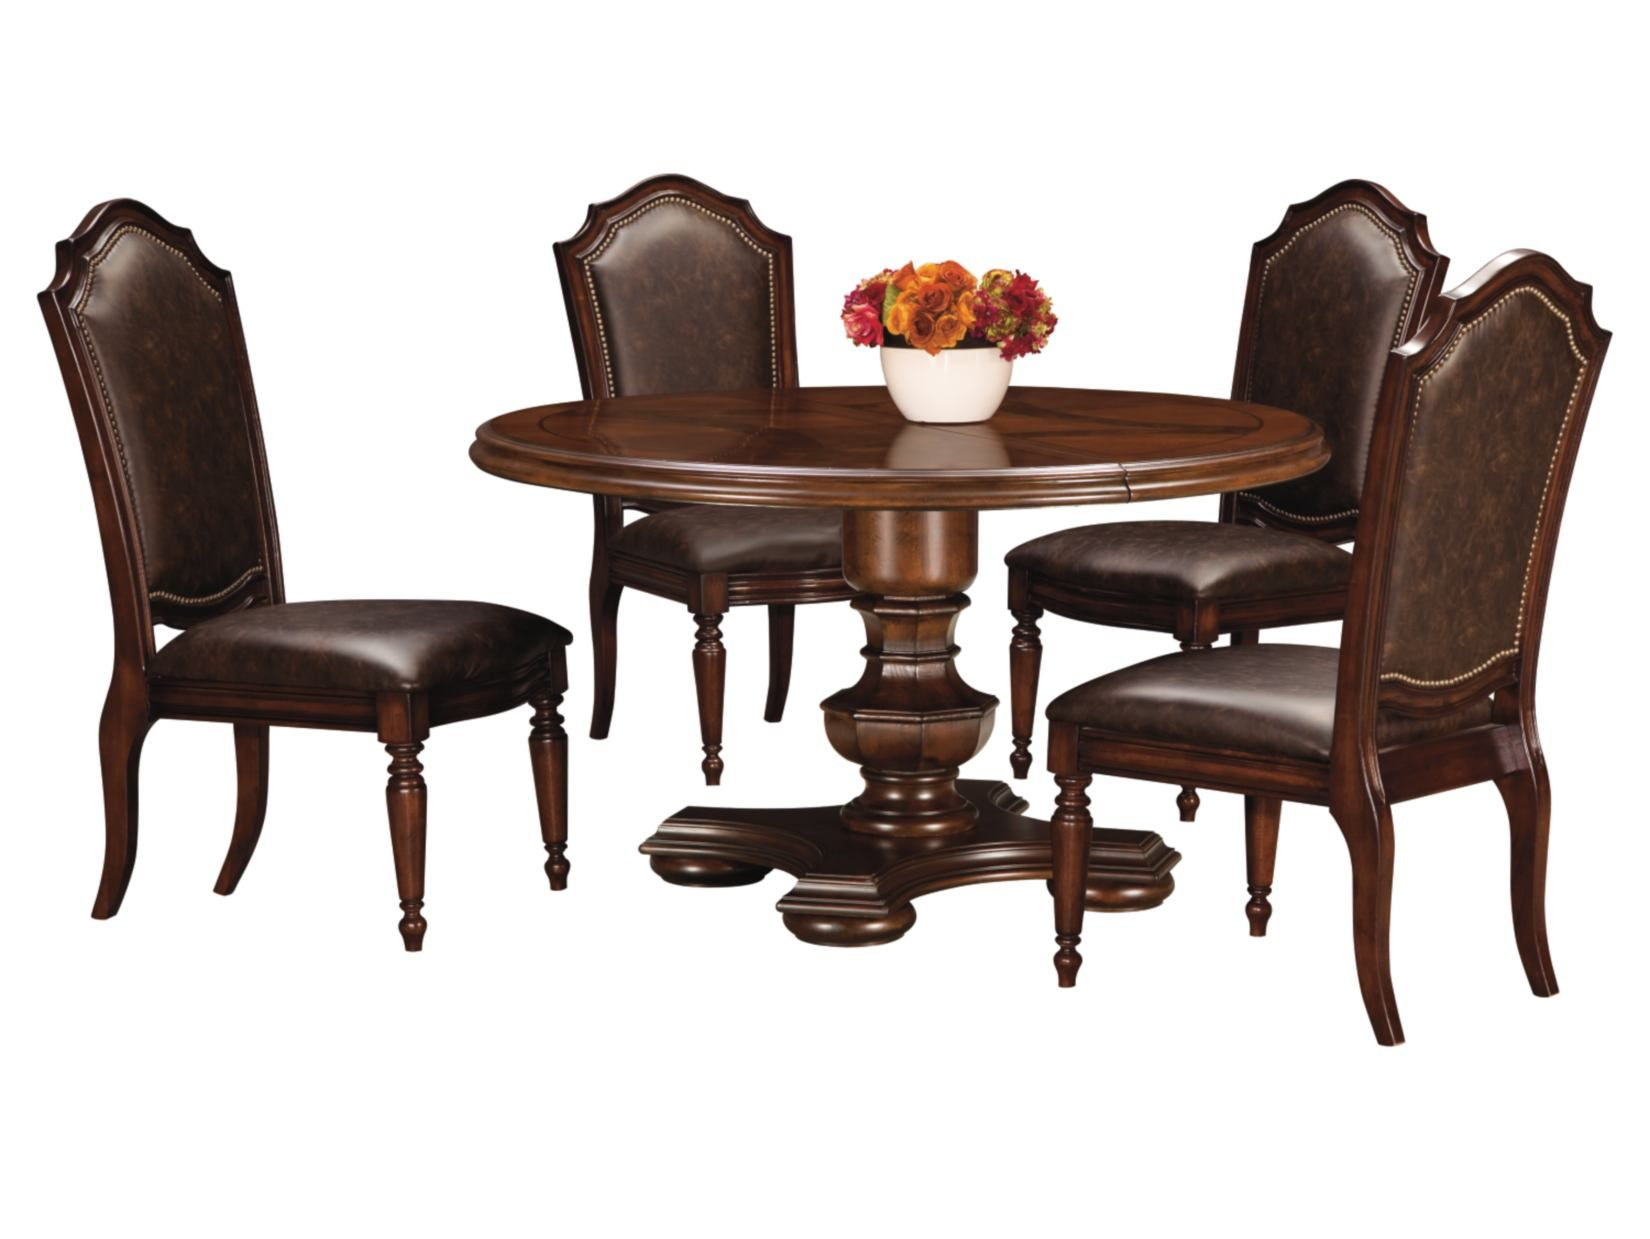 Chateau Emillion 5 Pc Single Pedestal Dining Set Value City Furniture Value City Furniture American Signature Furniture Furniture